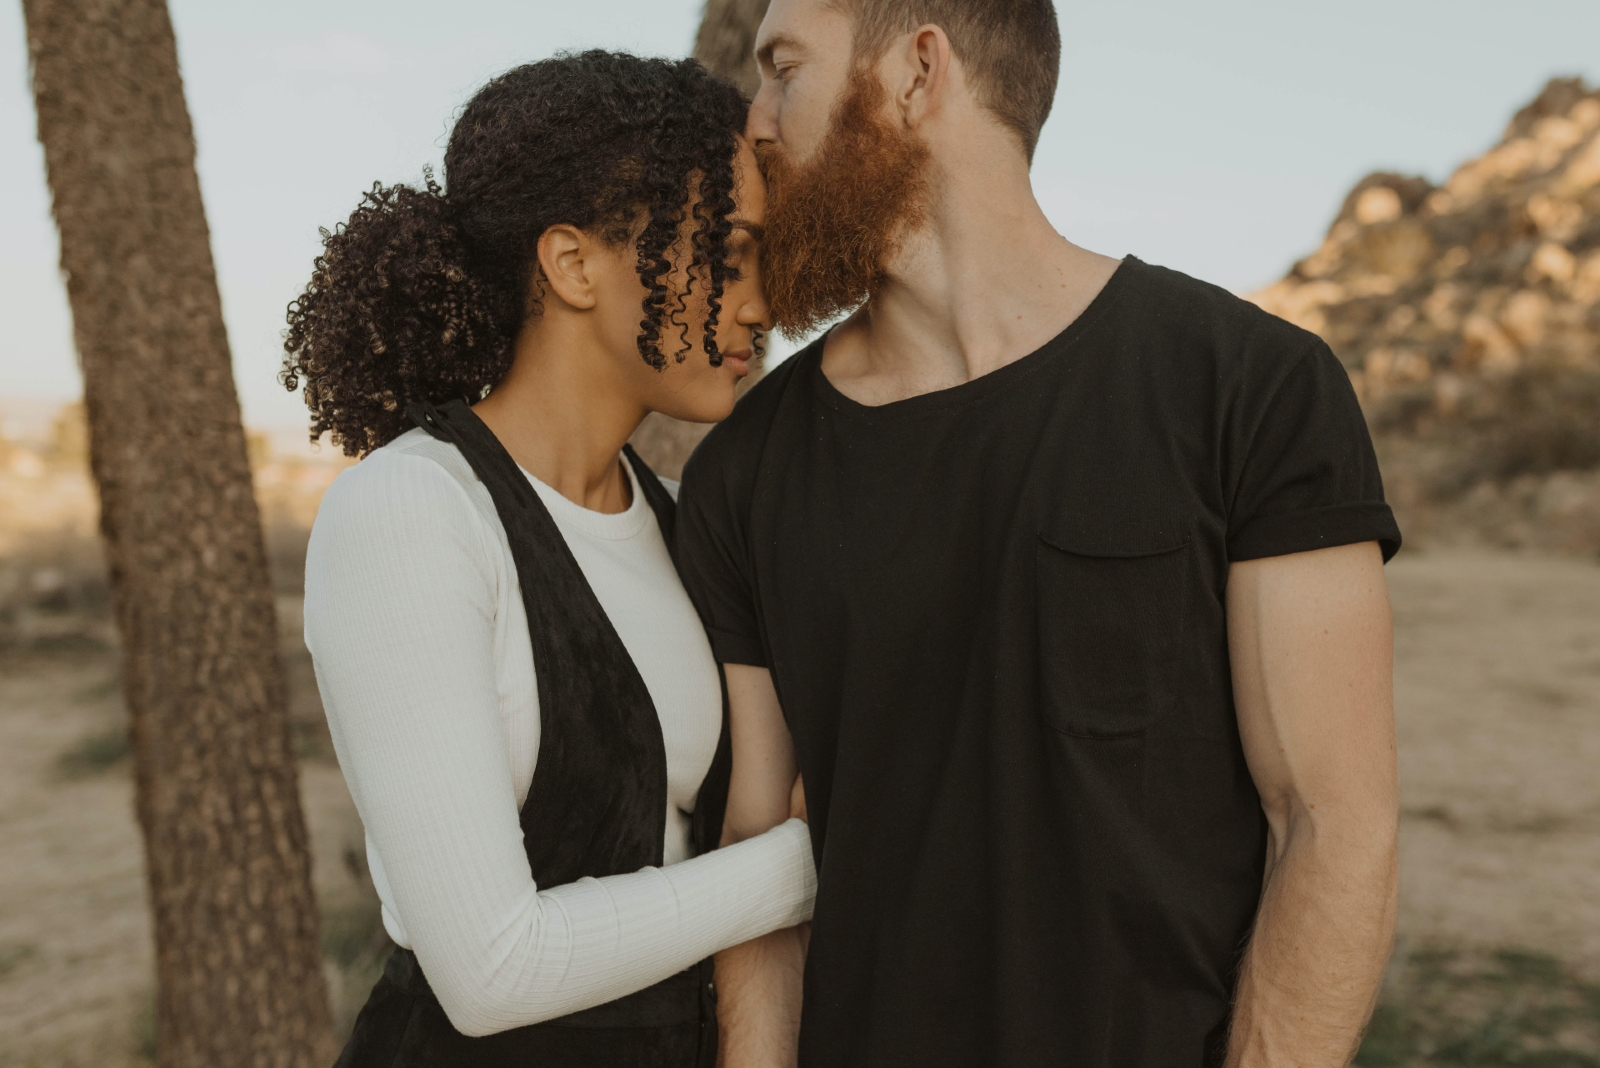 man kissing woman's forehead while standing near tree